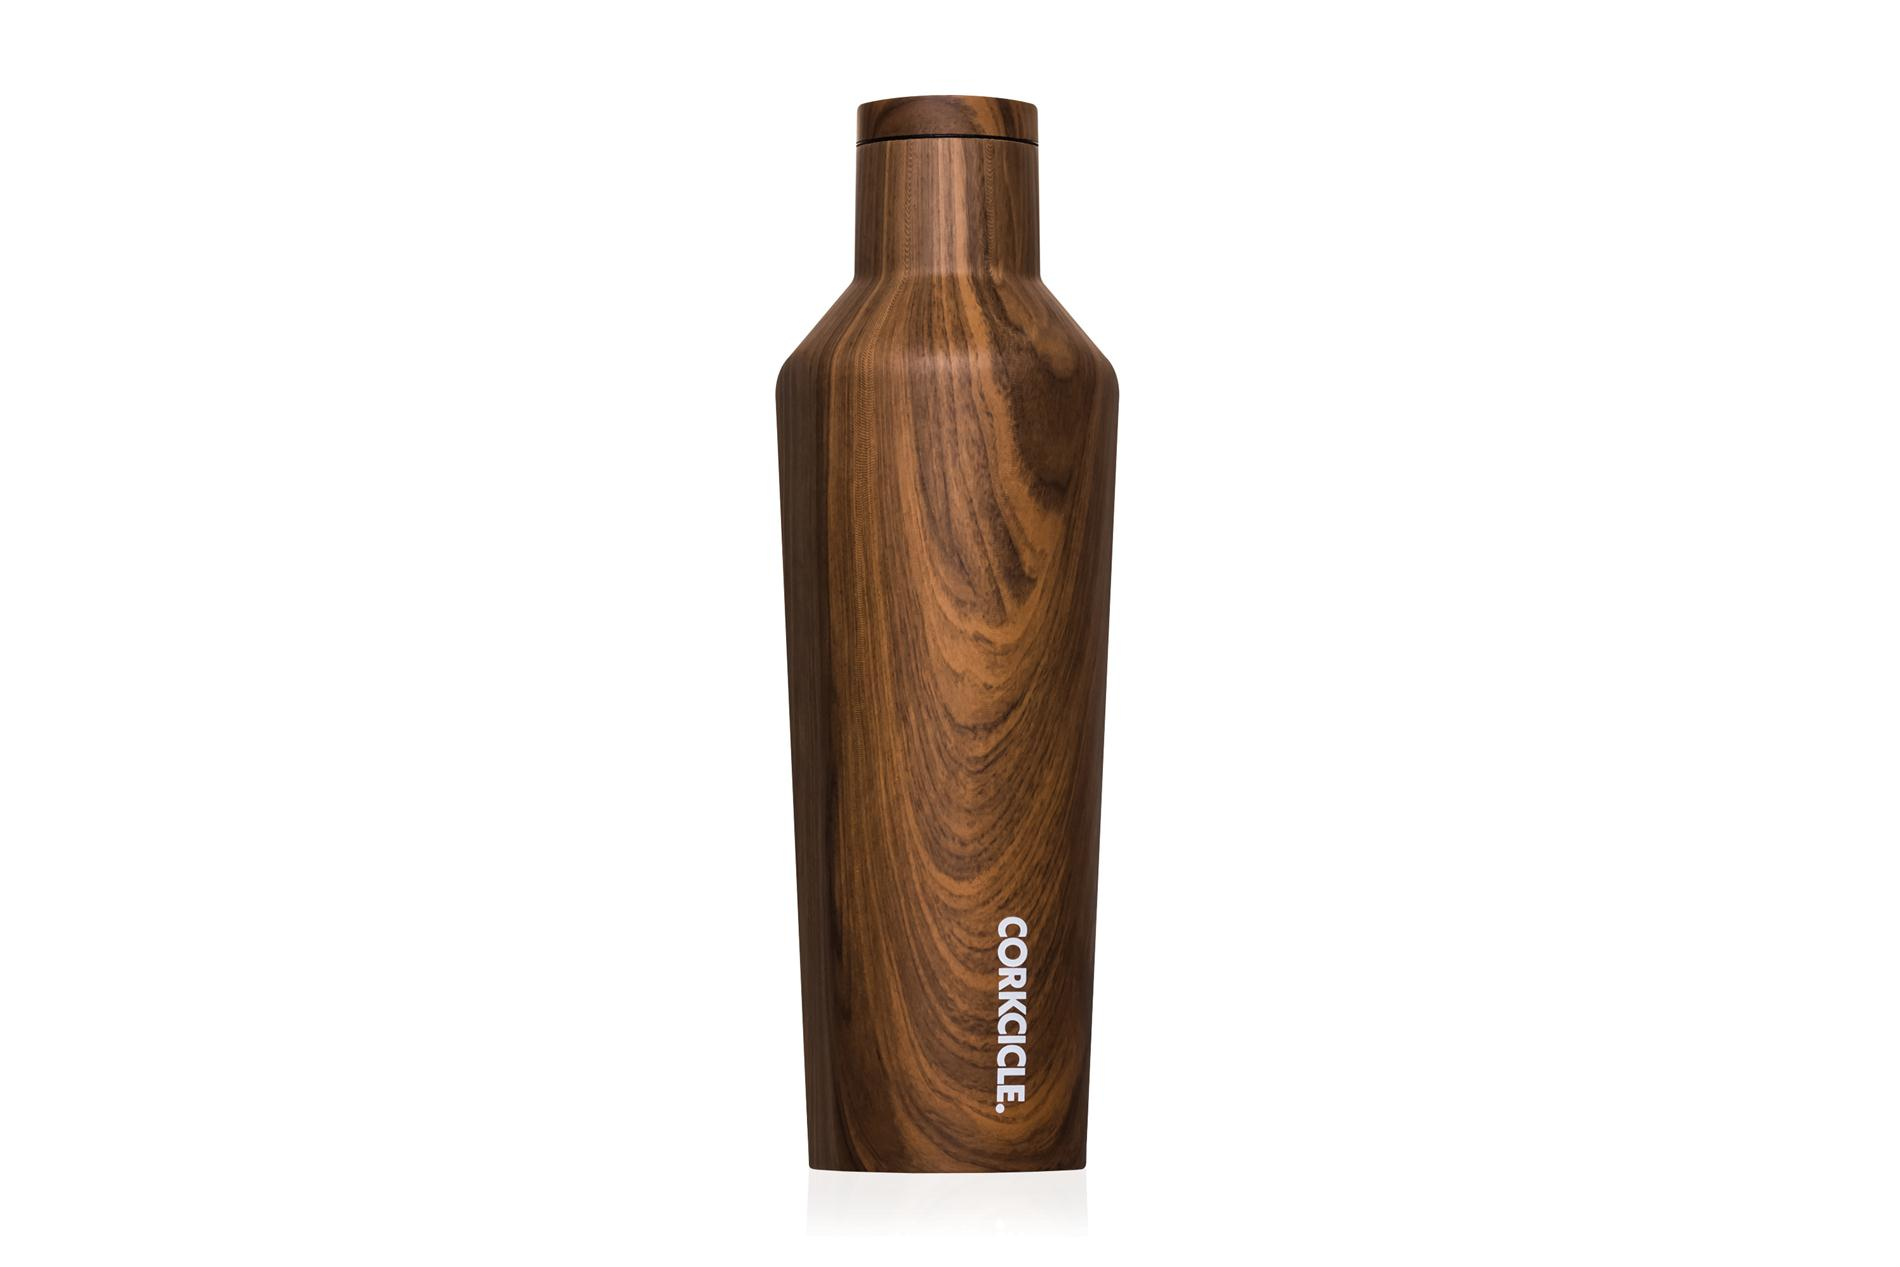 Corkcicle Trinkflasche / Thermo Isolierflasche Walnut 475 ml Wood